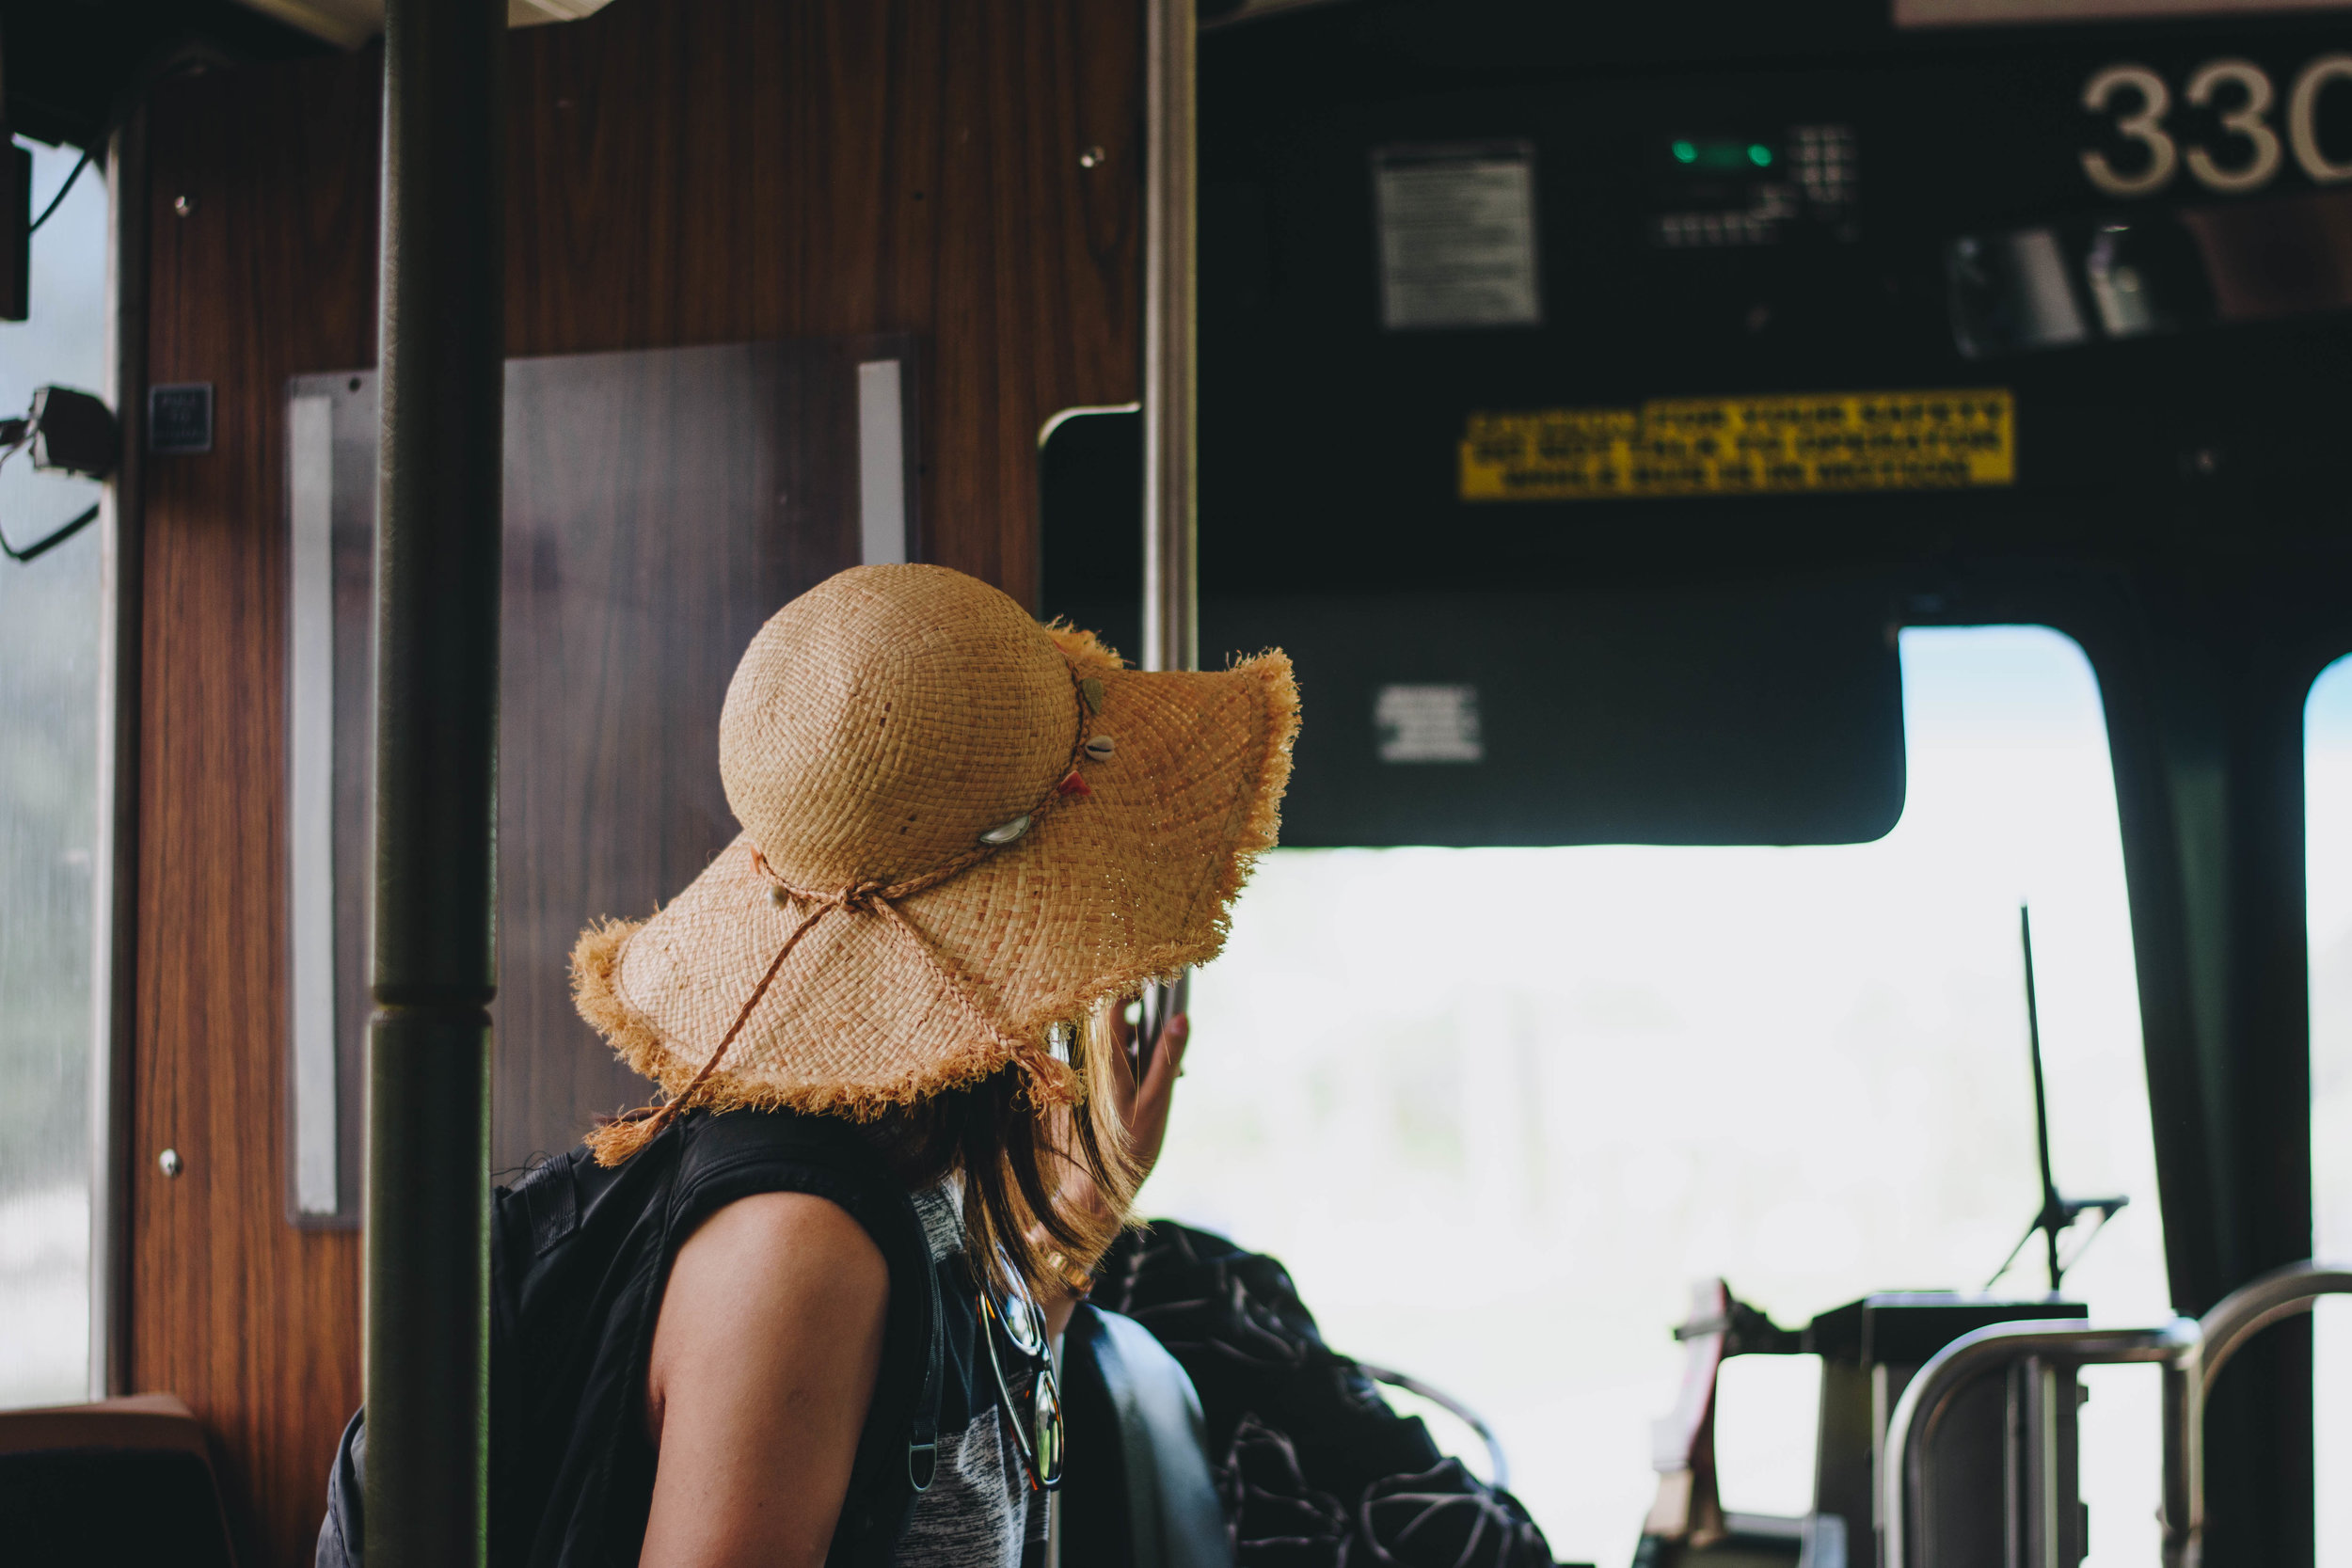 The Straw Hat Lady form Tokyo | A Bus on Oahu, Hawaii | December 13, 2016